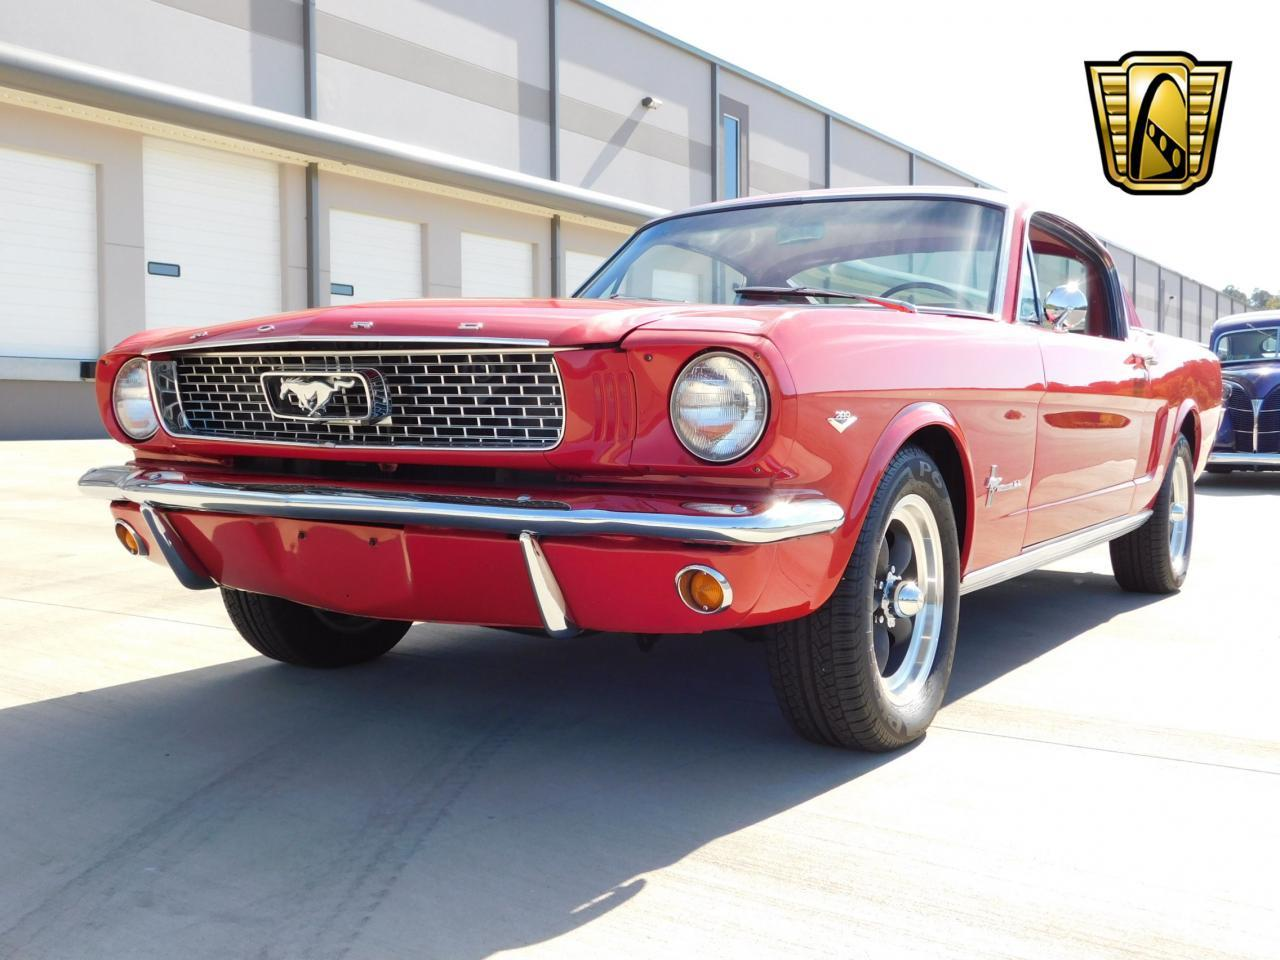 Large Picture of 1966 Ford Mustang - $46,995.00 Offered by Gateway Classic Cars - Atlanta - M8OT